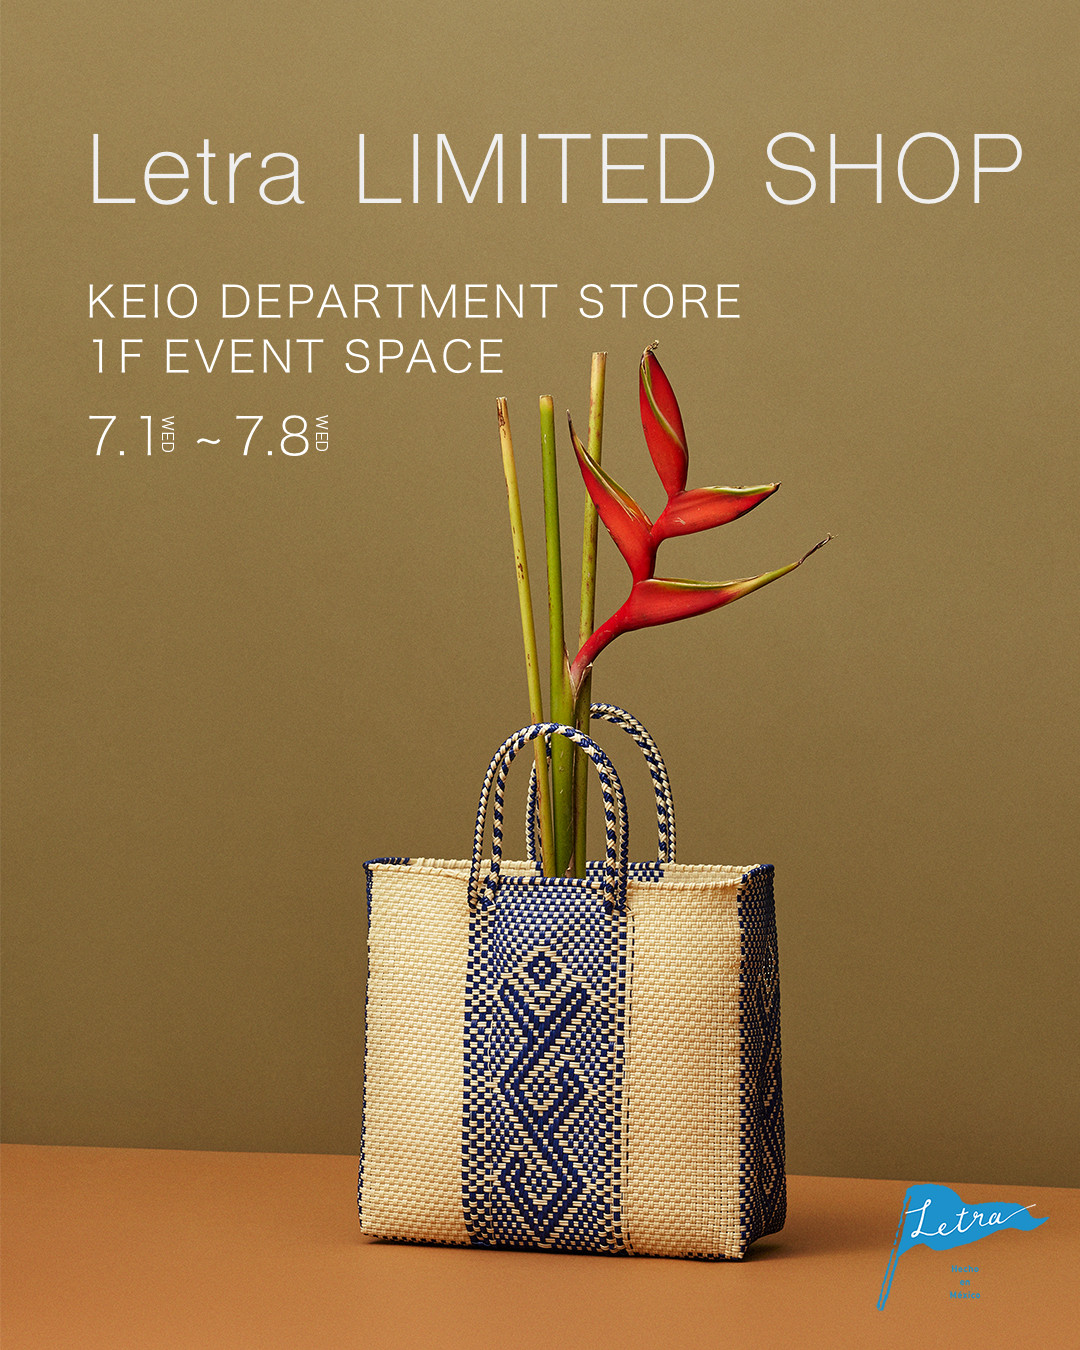 Letra Limited Shop 京王百貨店 OPEN!